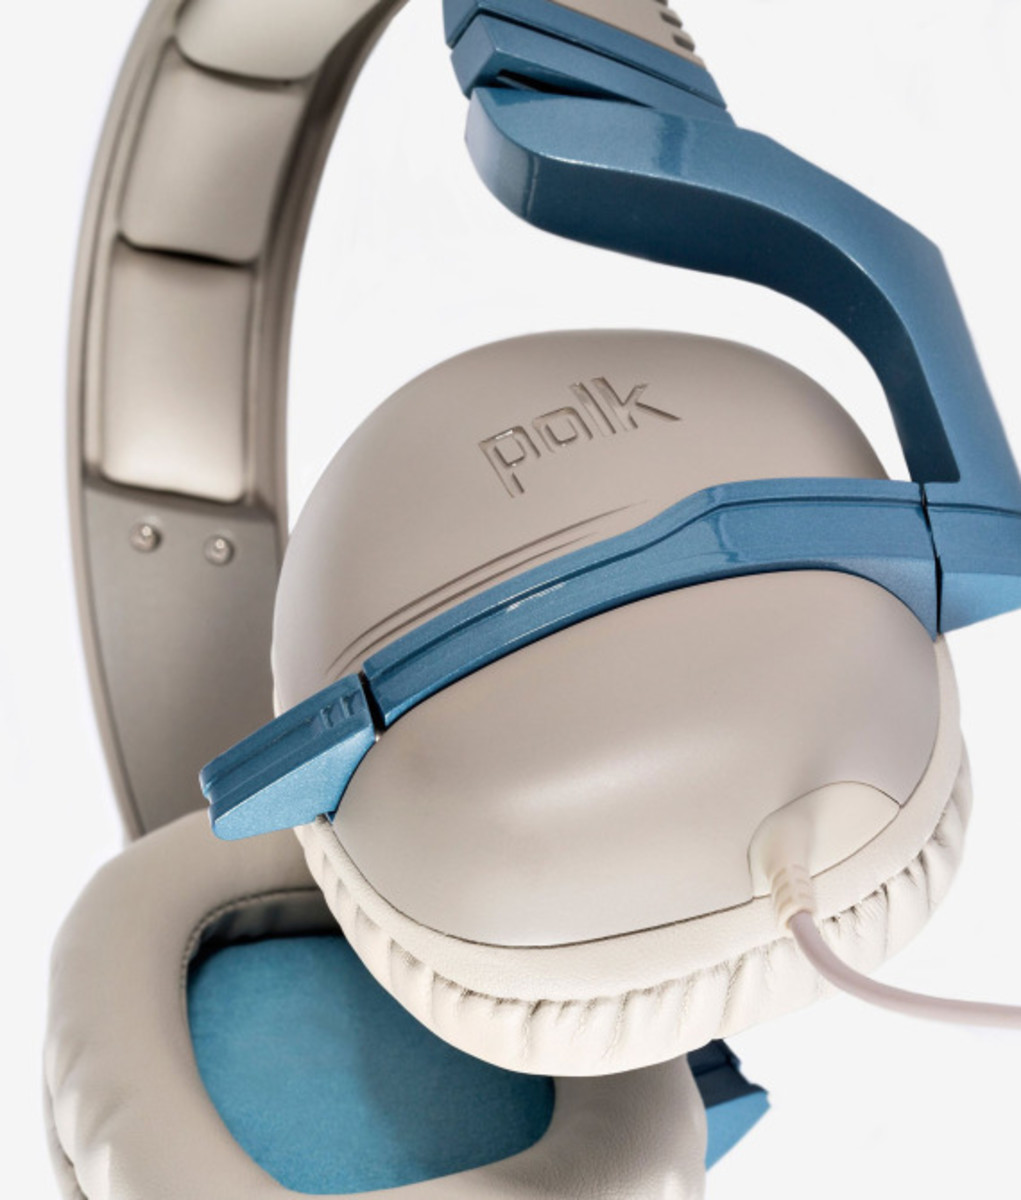 polk-striker-zx-xbox-one-gaming-headphones-03